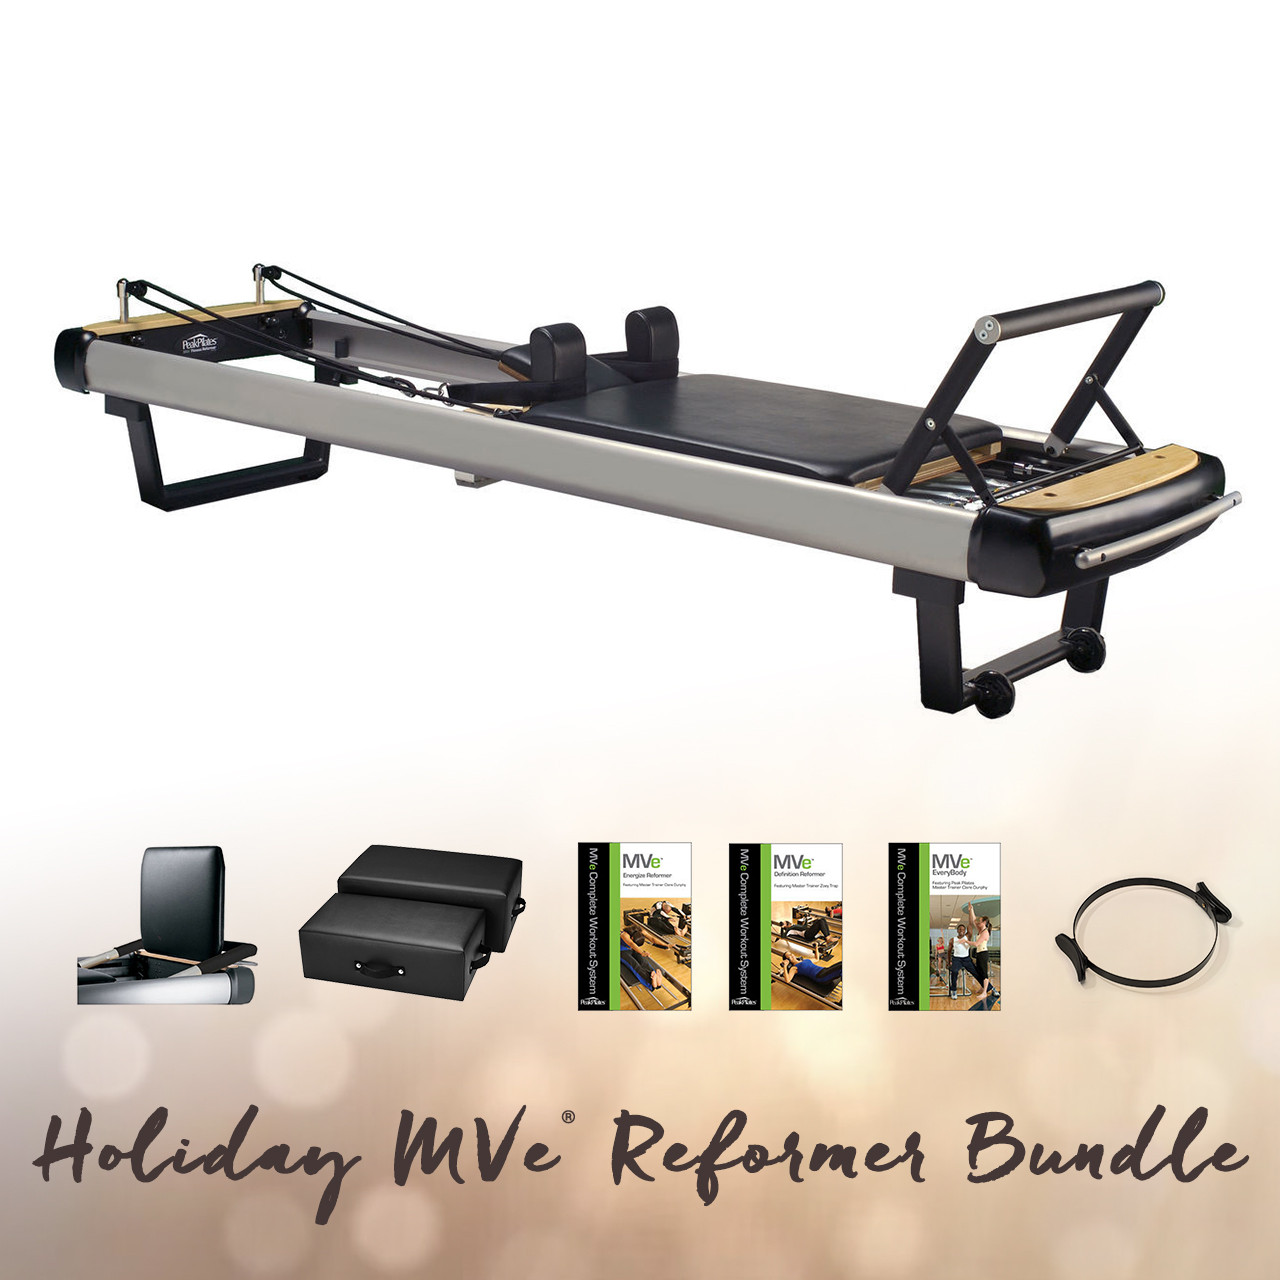 MVe® Reformer Holiday Bundle